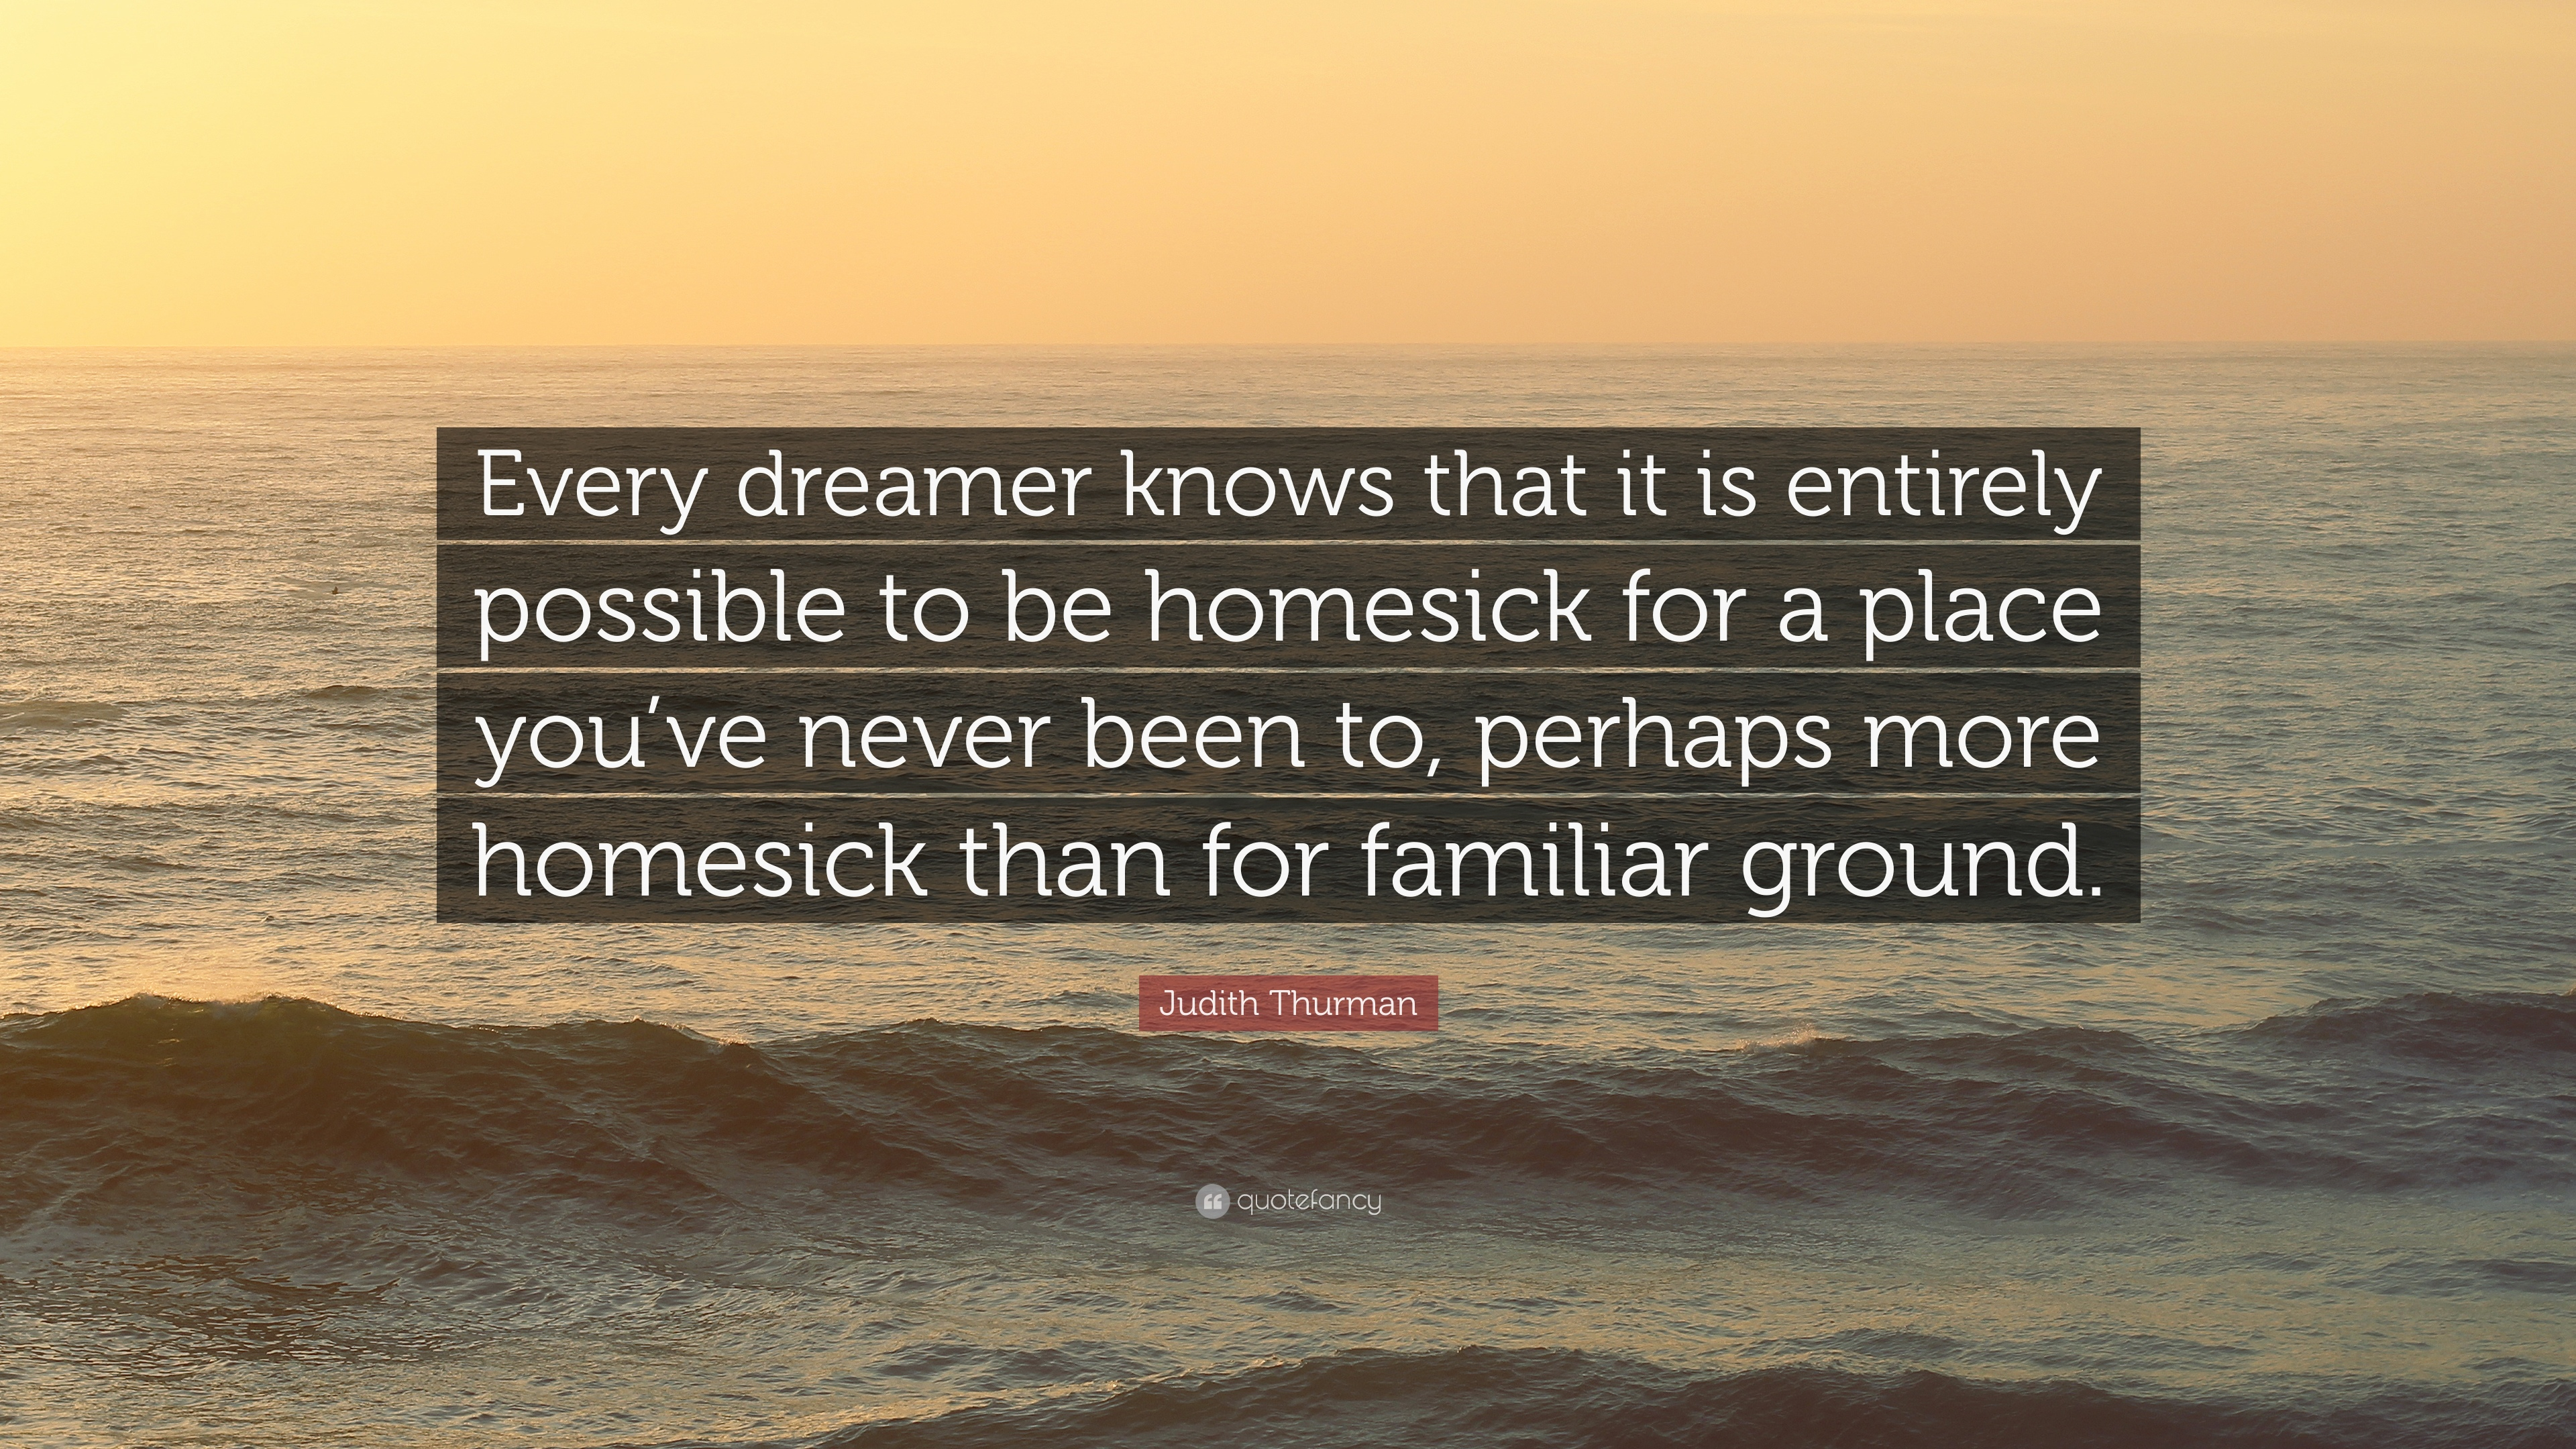 judith thurman quote u201cevery dreamer knows that it is entirely